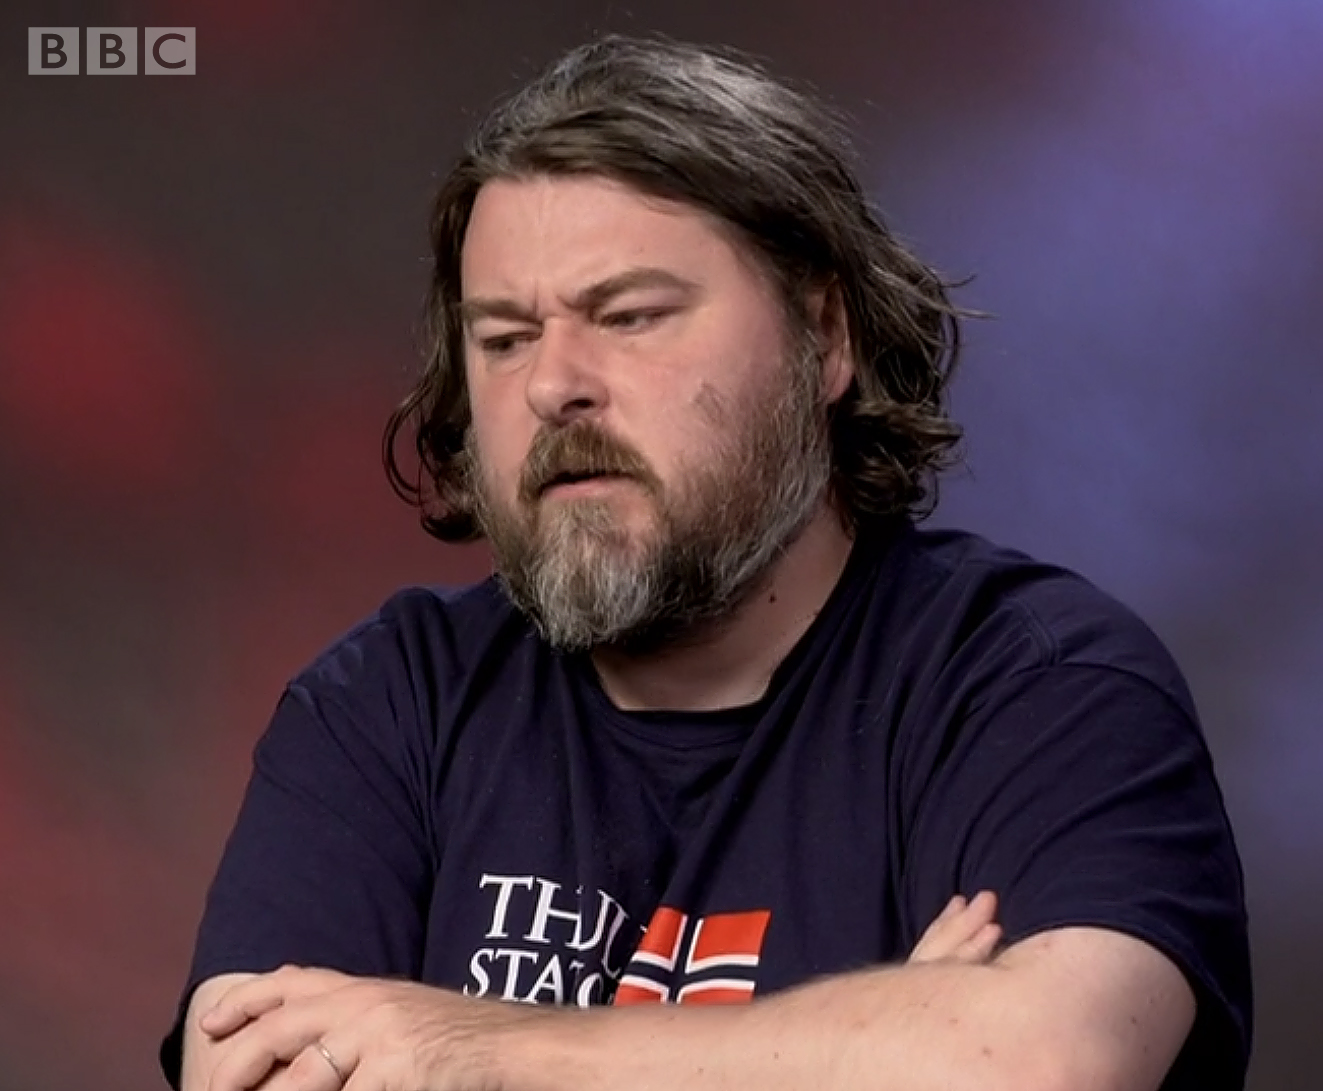 Ben Wheatley in Last Exit To Nowhere